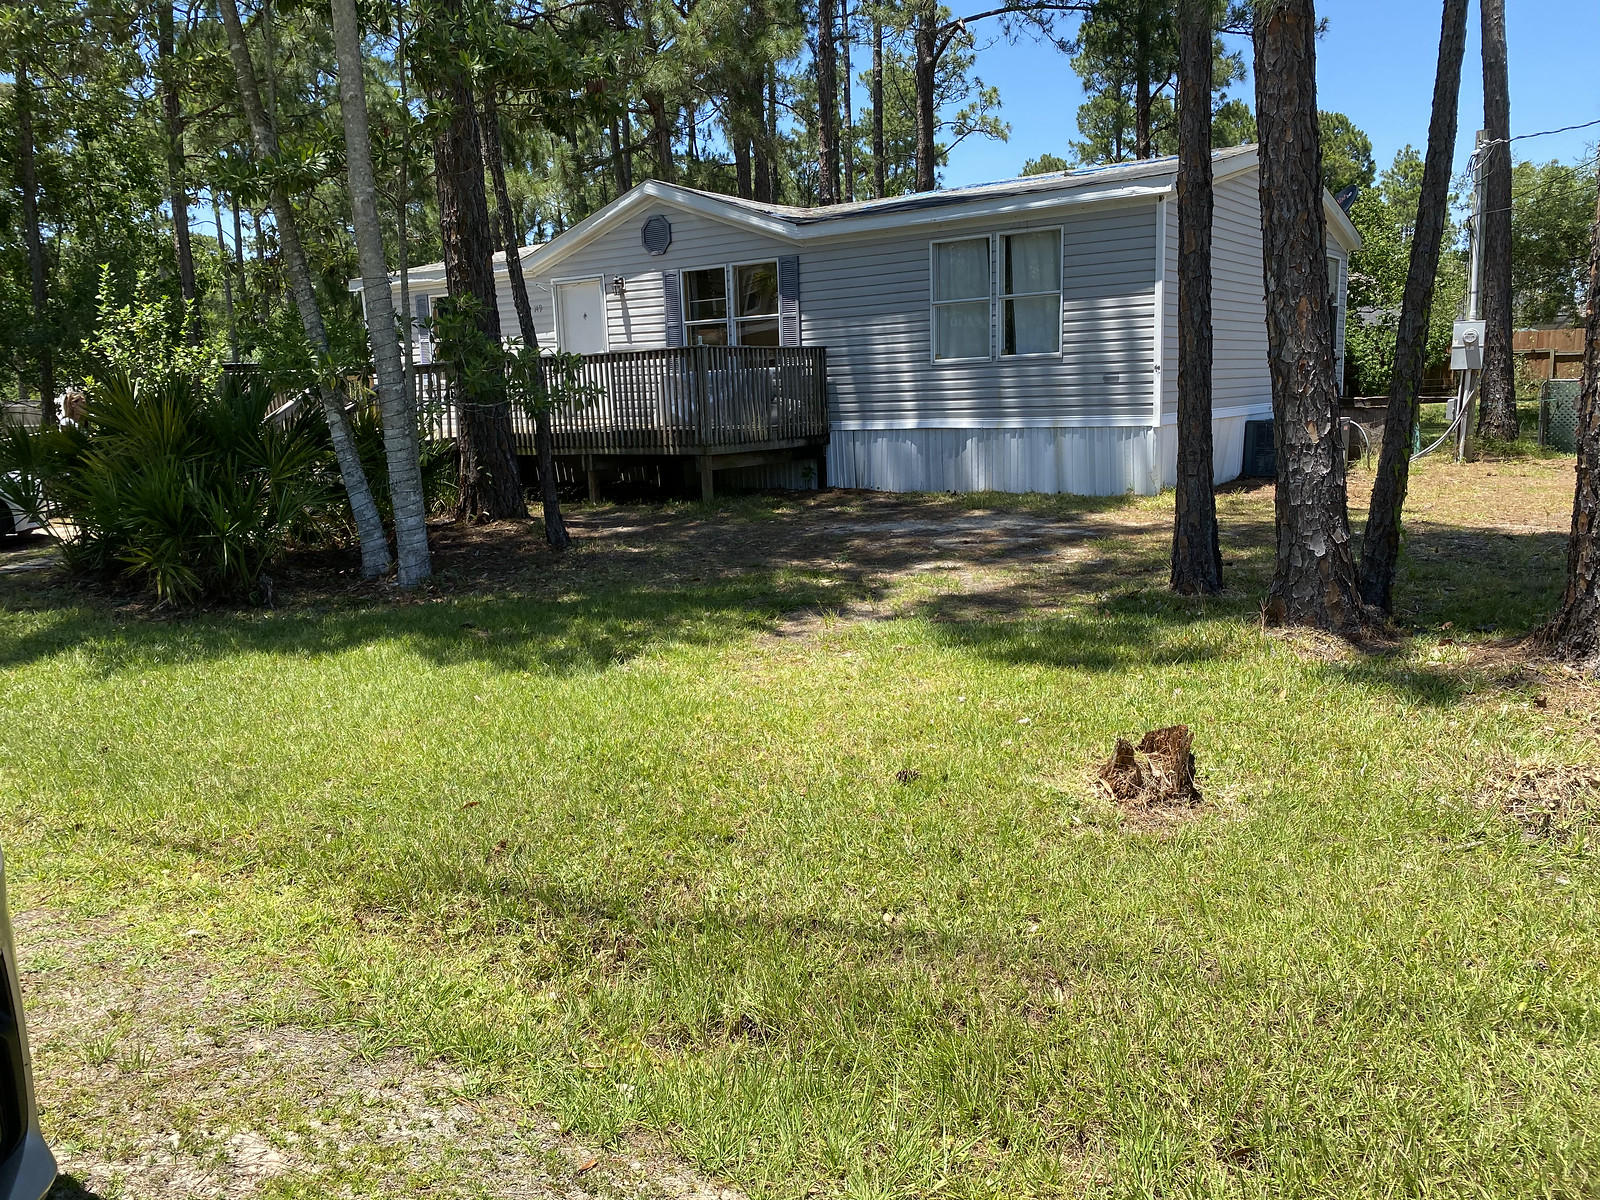 Photo of home for sale at 149 Sierra, Santa Rosa Beach FL